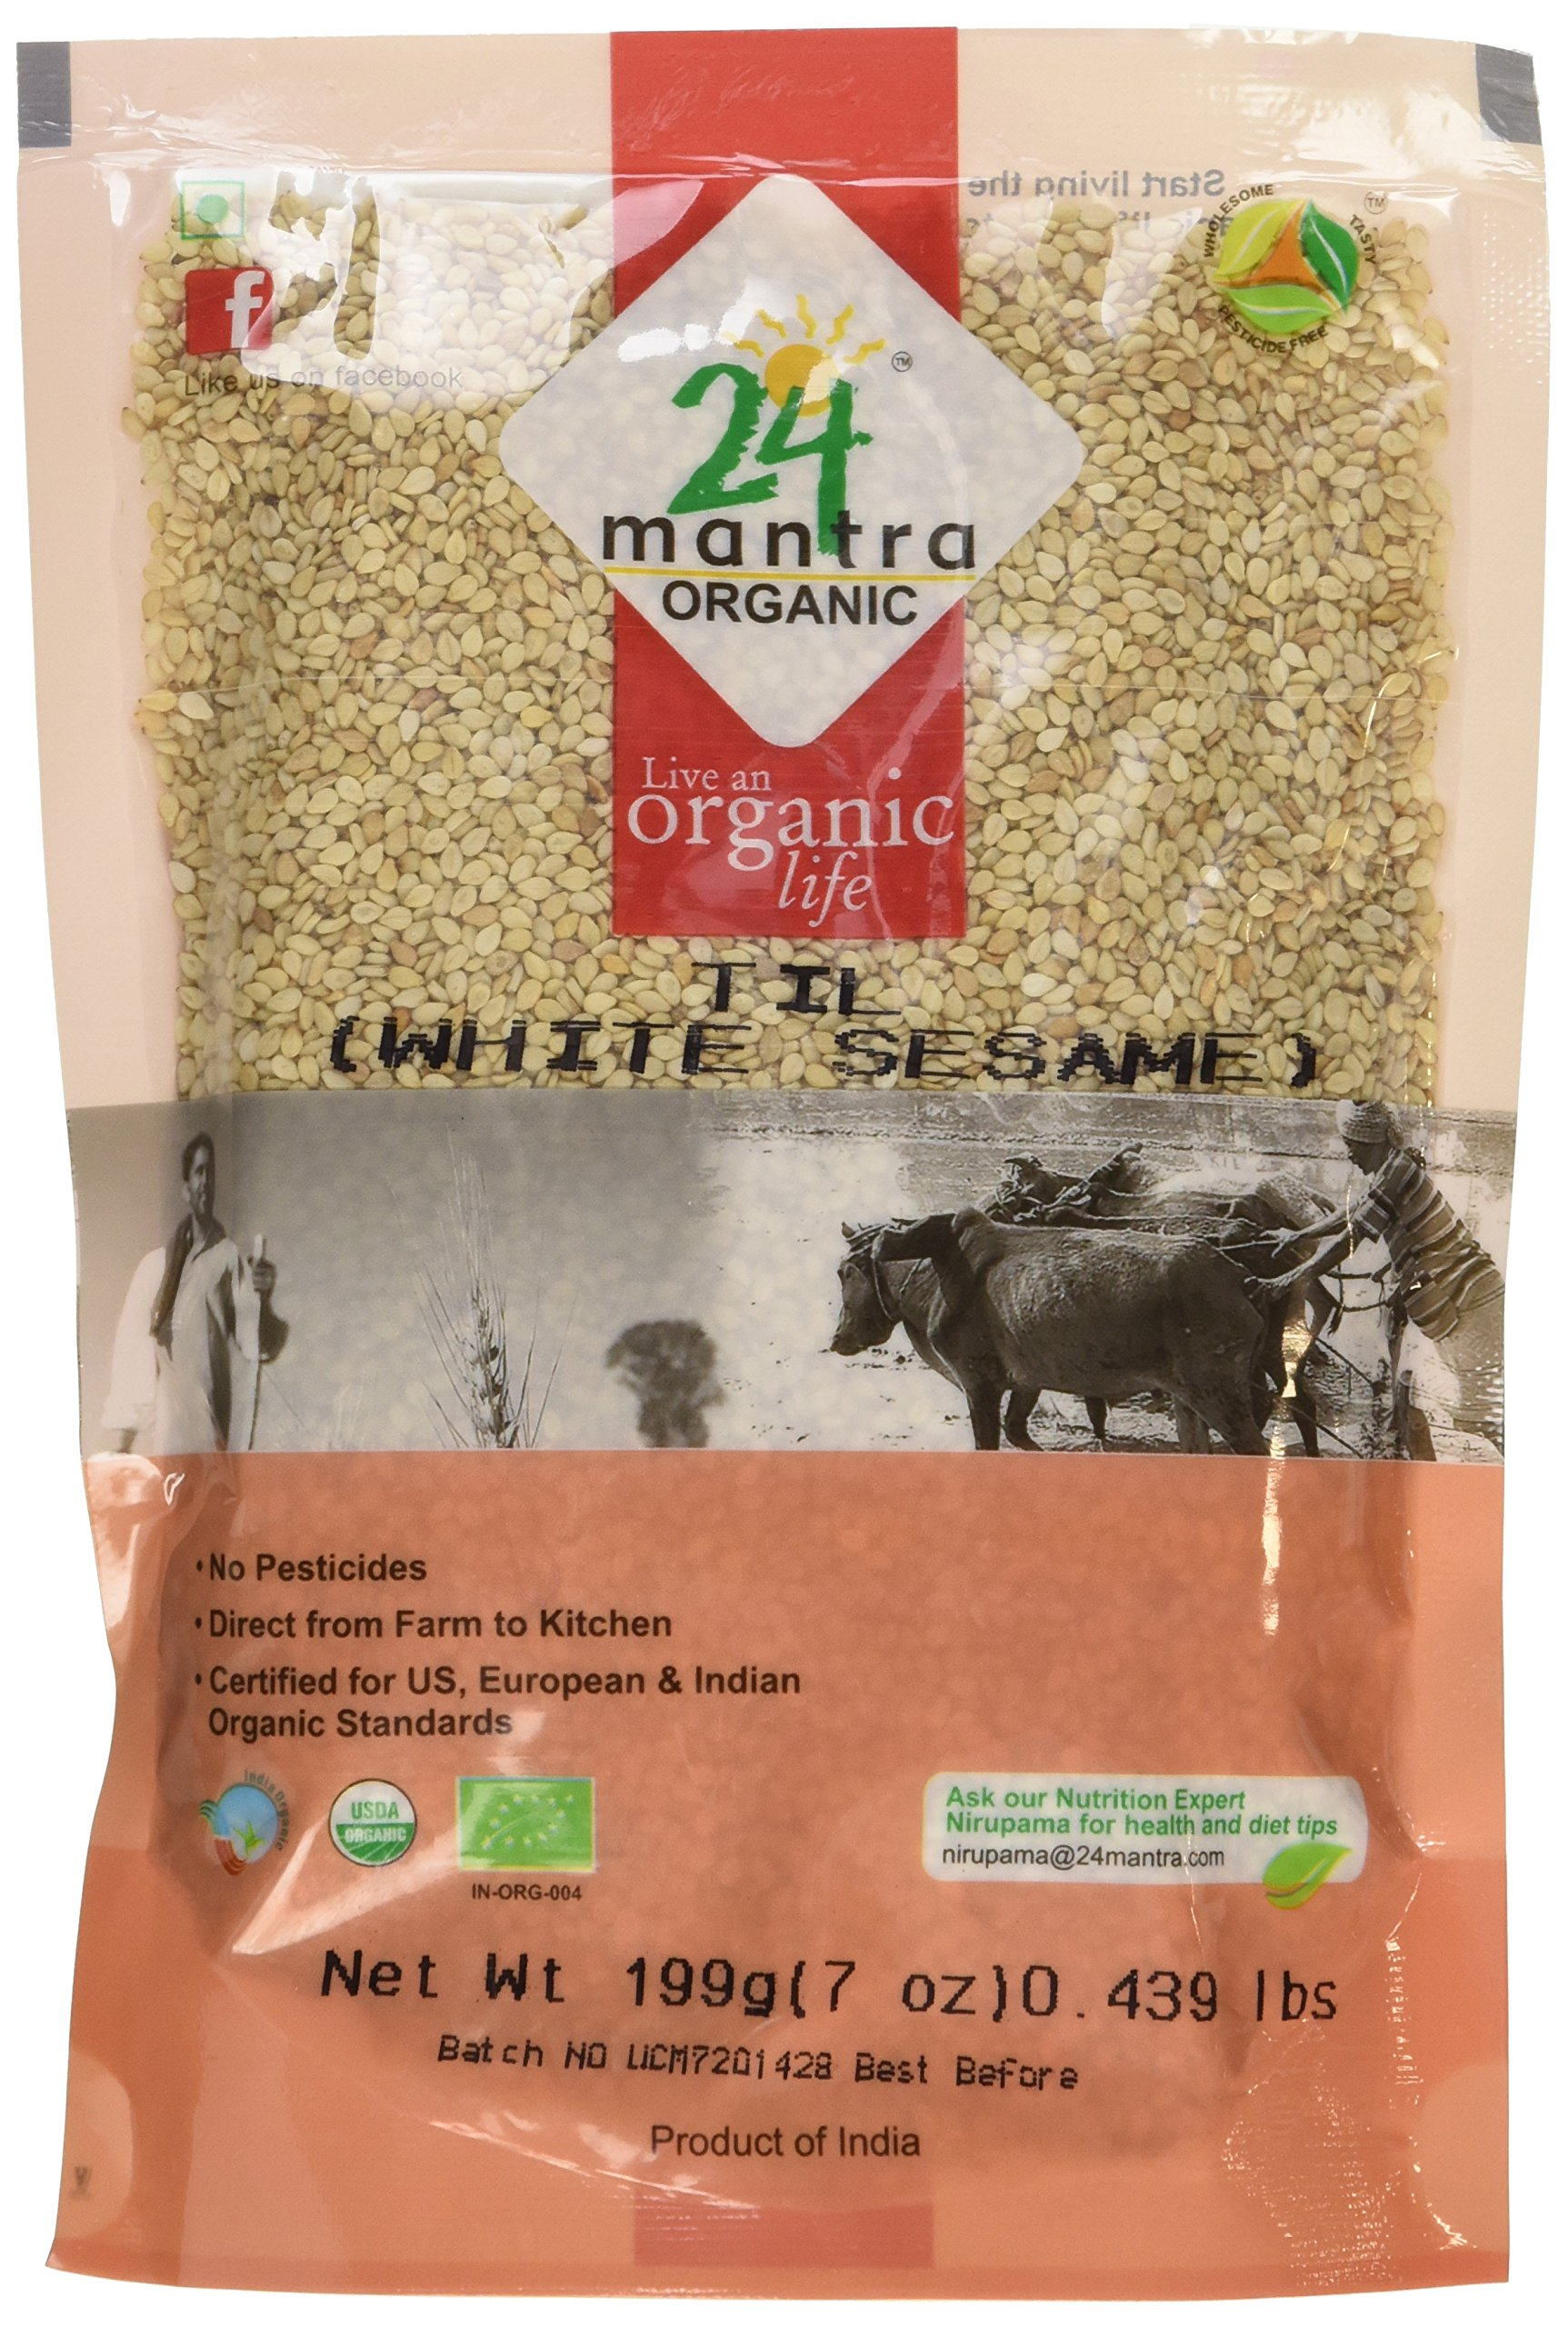 Organic White Sesame Seeds - ★ USDA Certified Organic - ★ European Union Certified Organic - ★ Pesticides Free - ★ Adulteration Free - ★ Sodium Free - Pack of 2 X 7 Ounces (14 Ounces) - 24 Mantra Organic